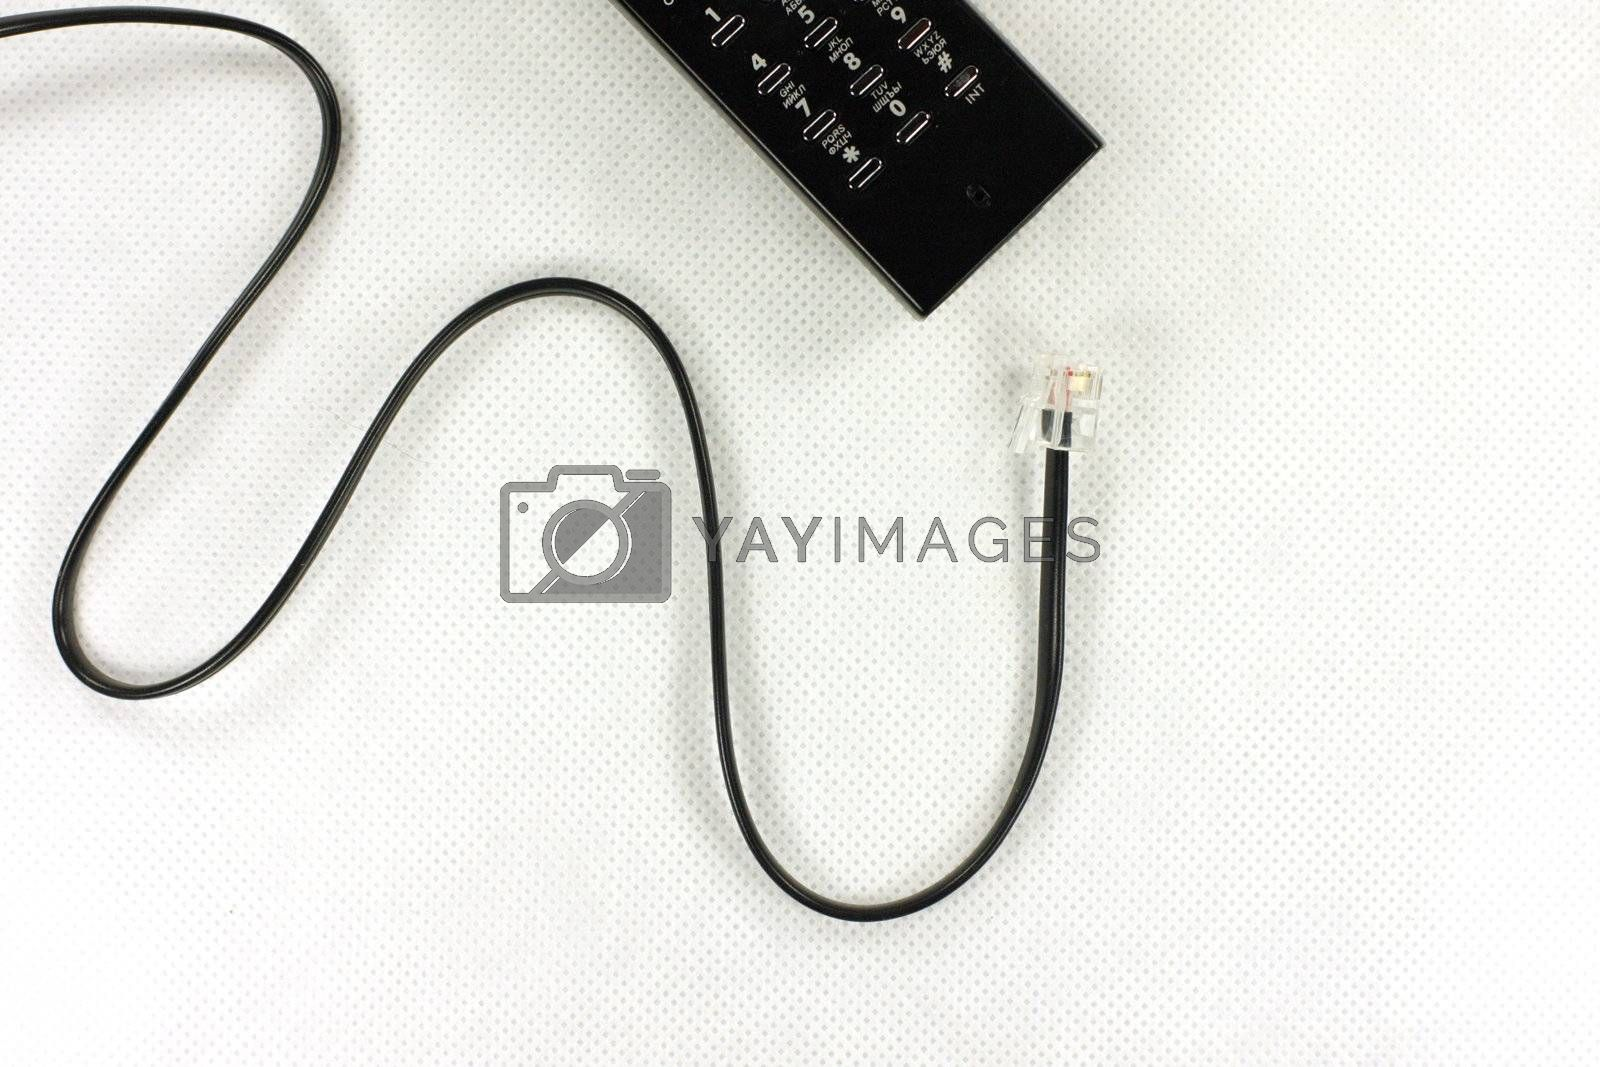 Cable, phone, office, communication, business, conversation, electronics, technologies